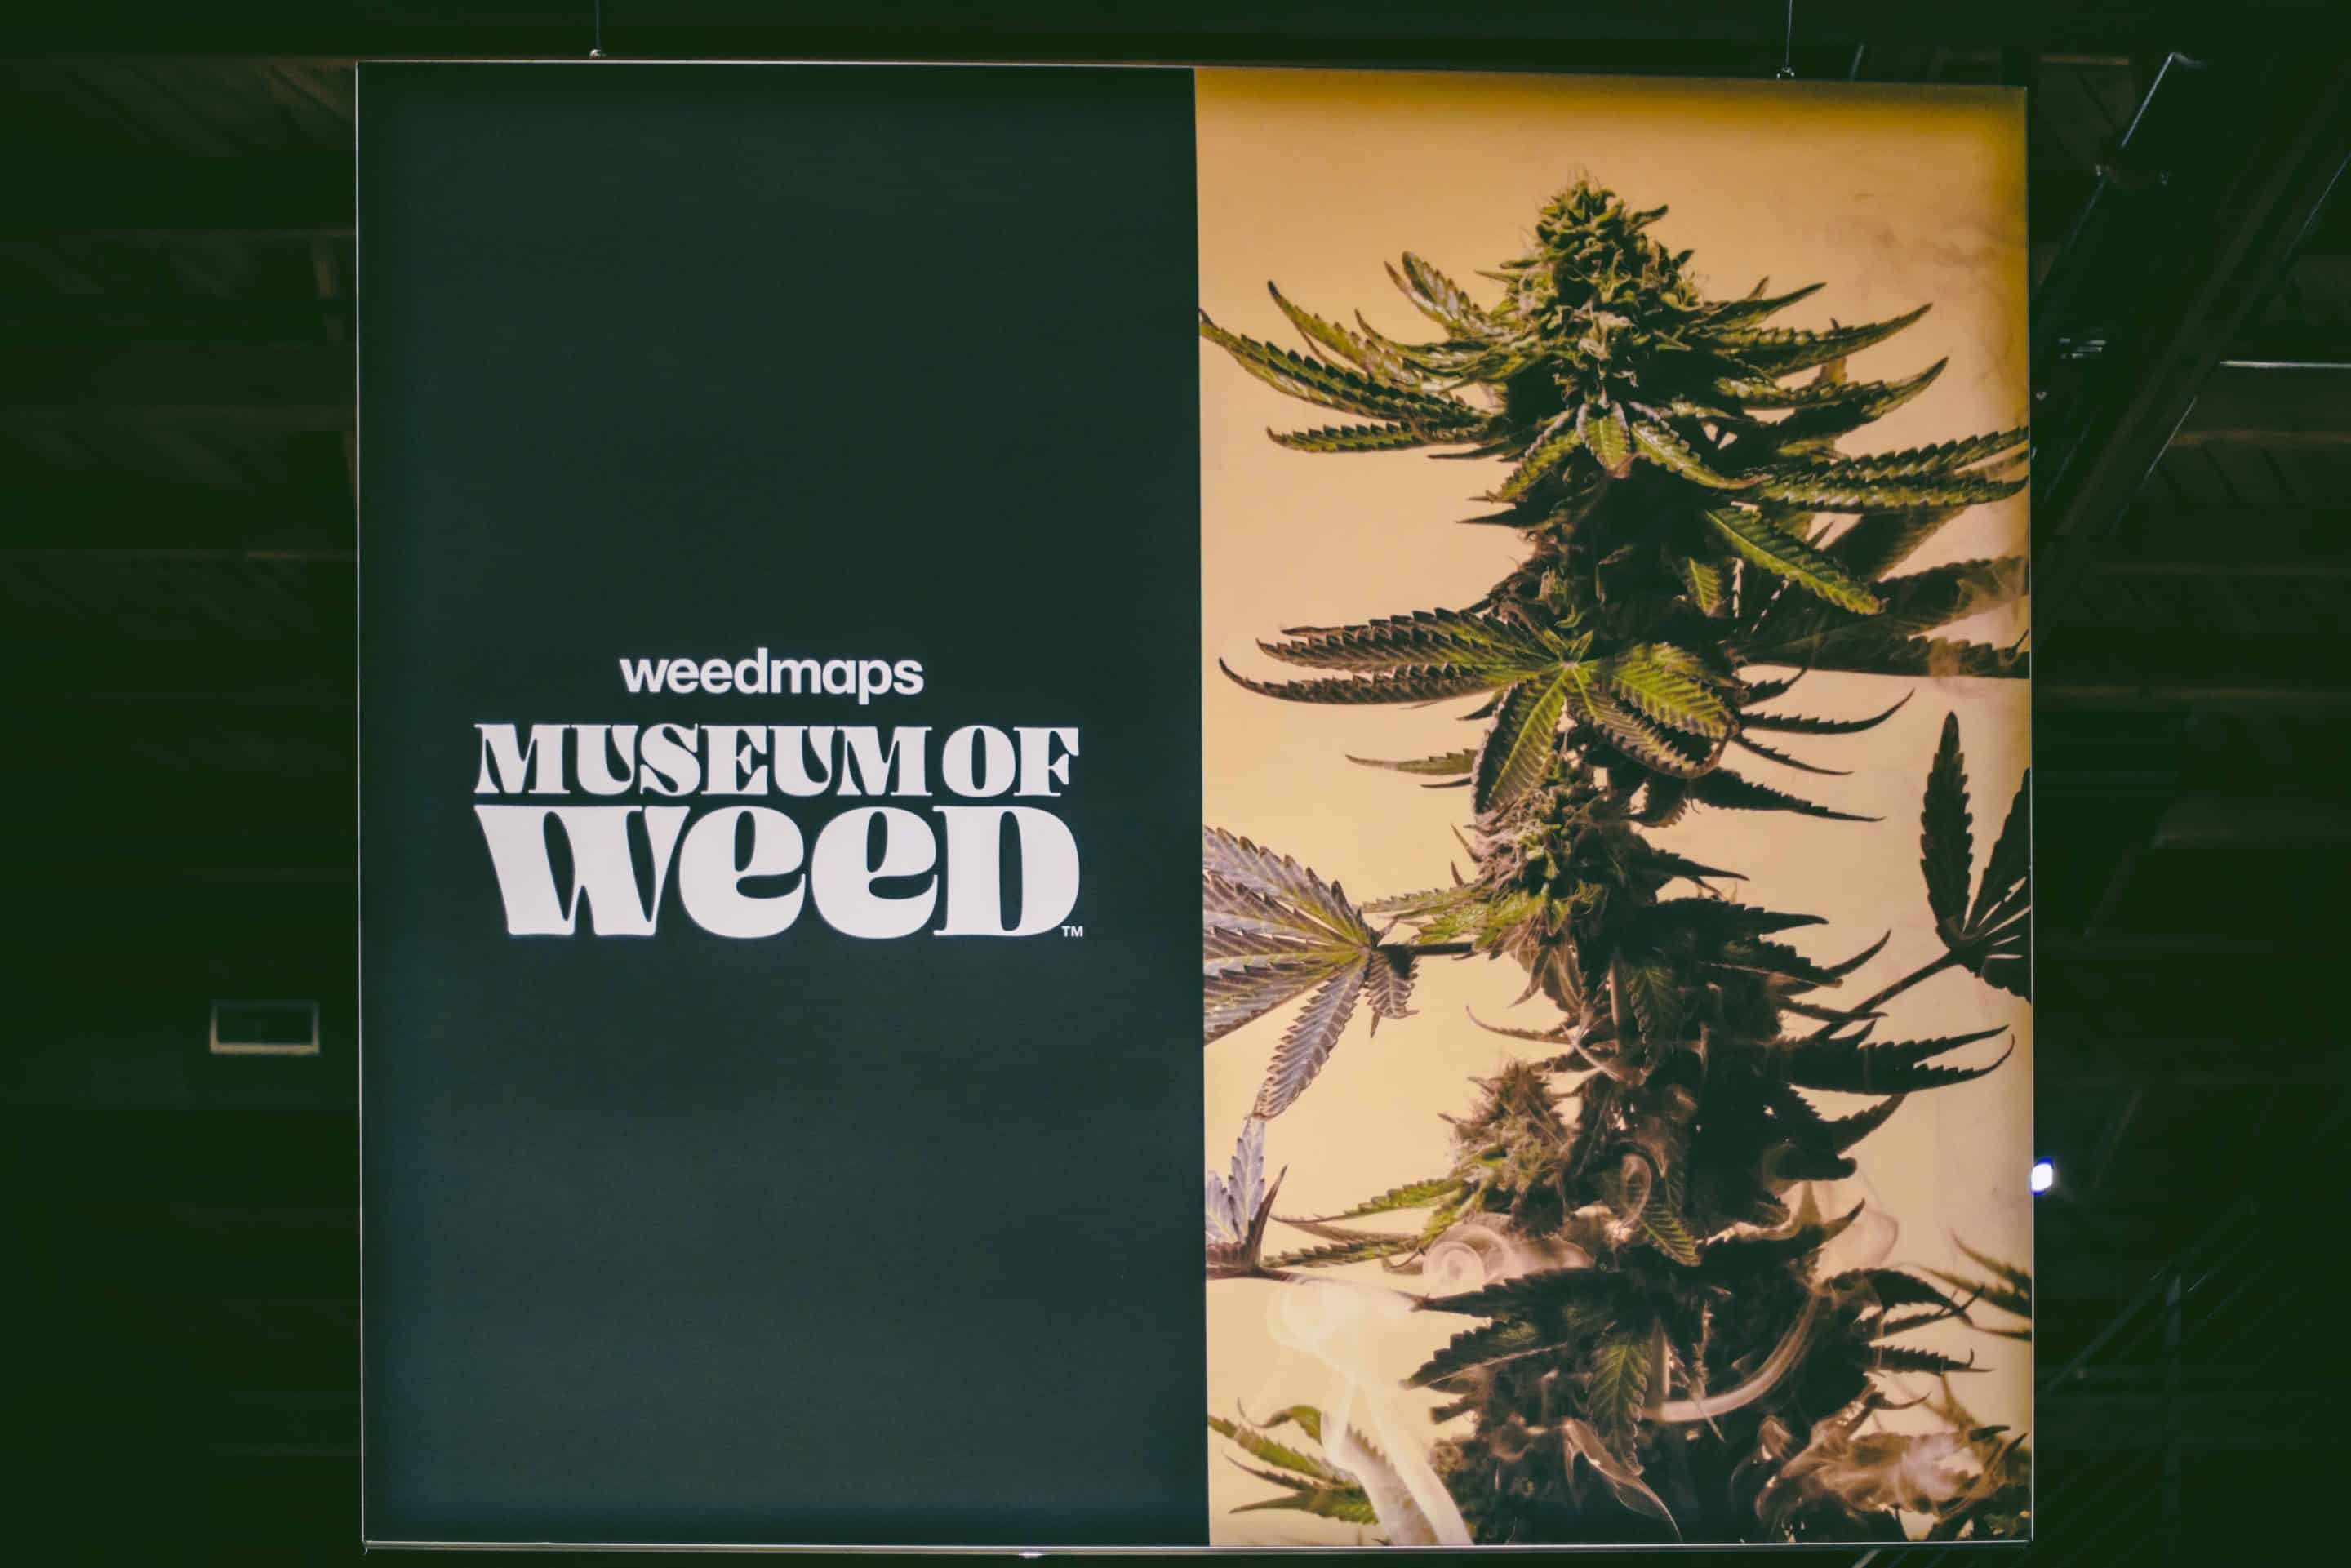 This Blunt Talks event was held at Weedmaps Museum of Weed, which finishes up its stint in Los Angeles Oct. 27.